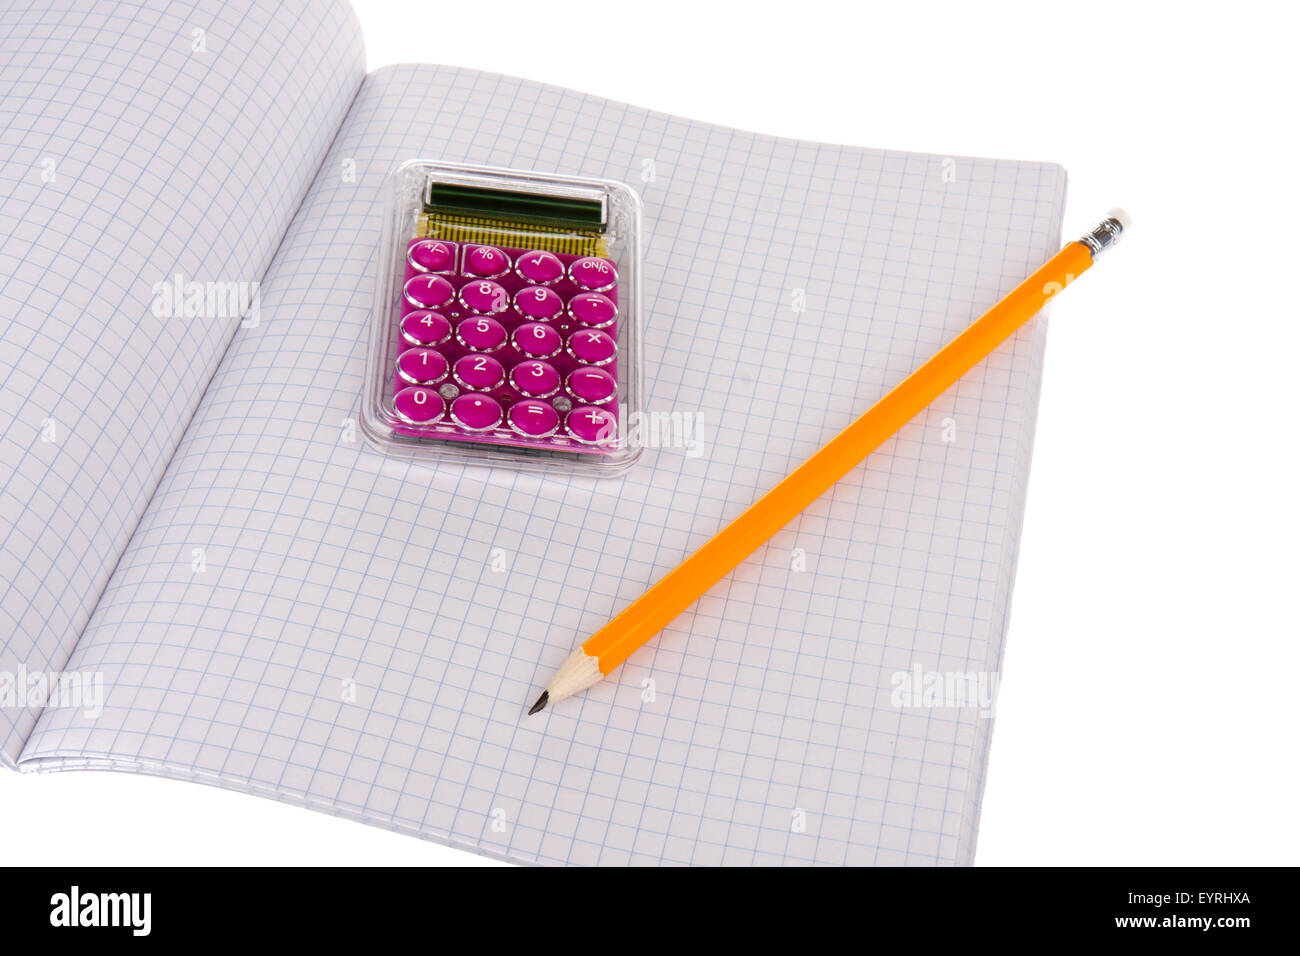 Exercise book with wooden pencil and calculator - Stock Image